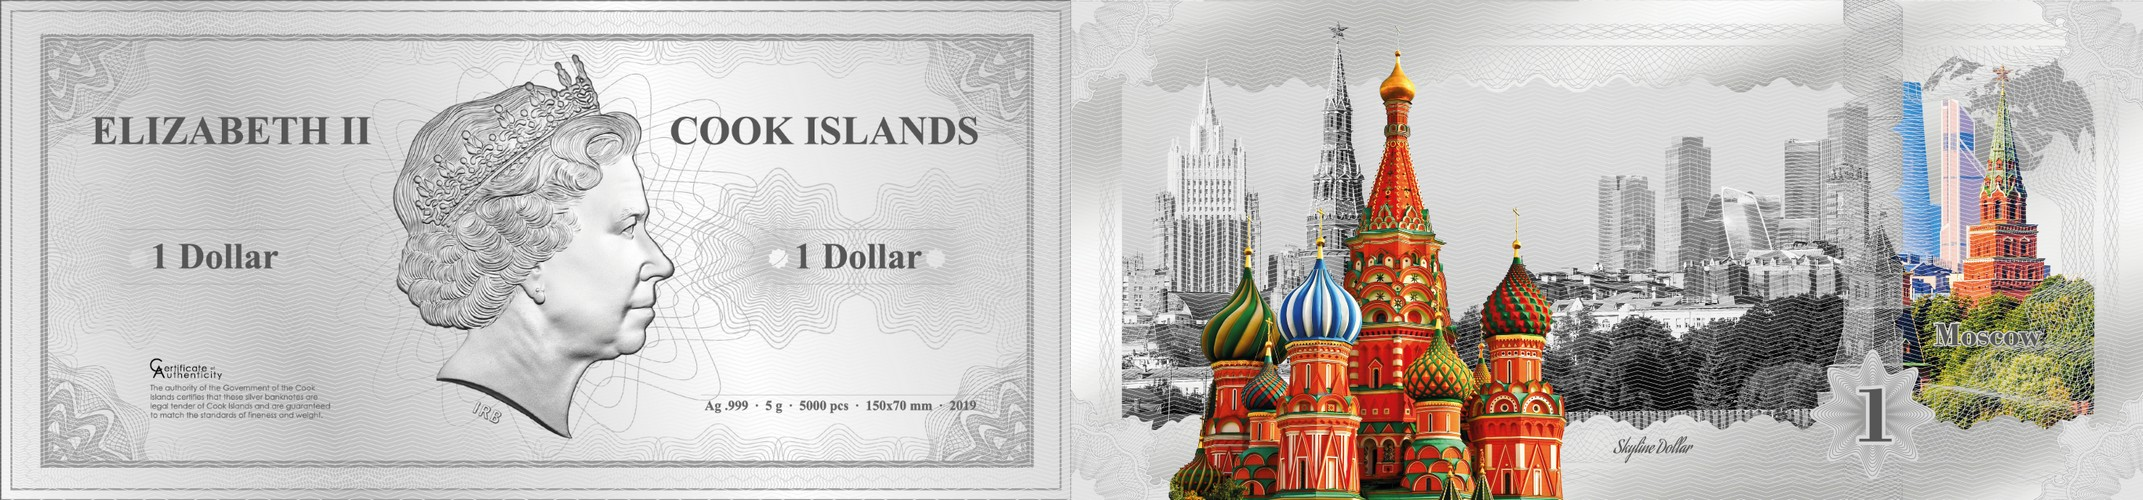 cook-isl-2019-skyline-dollar-moscou